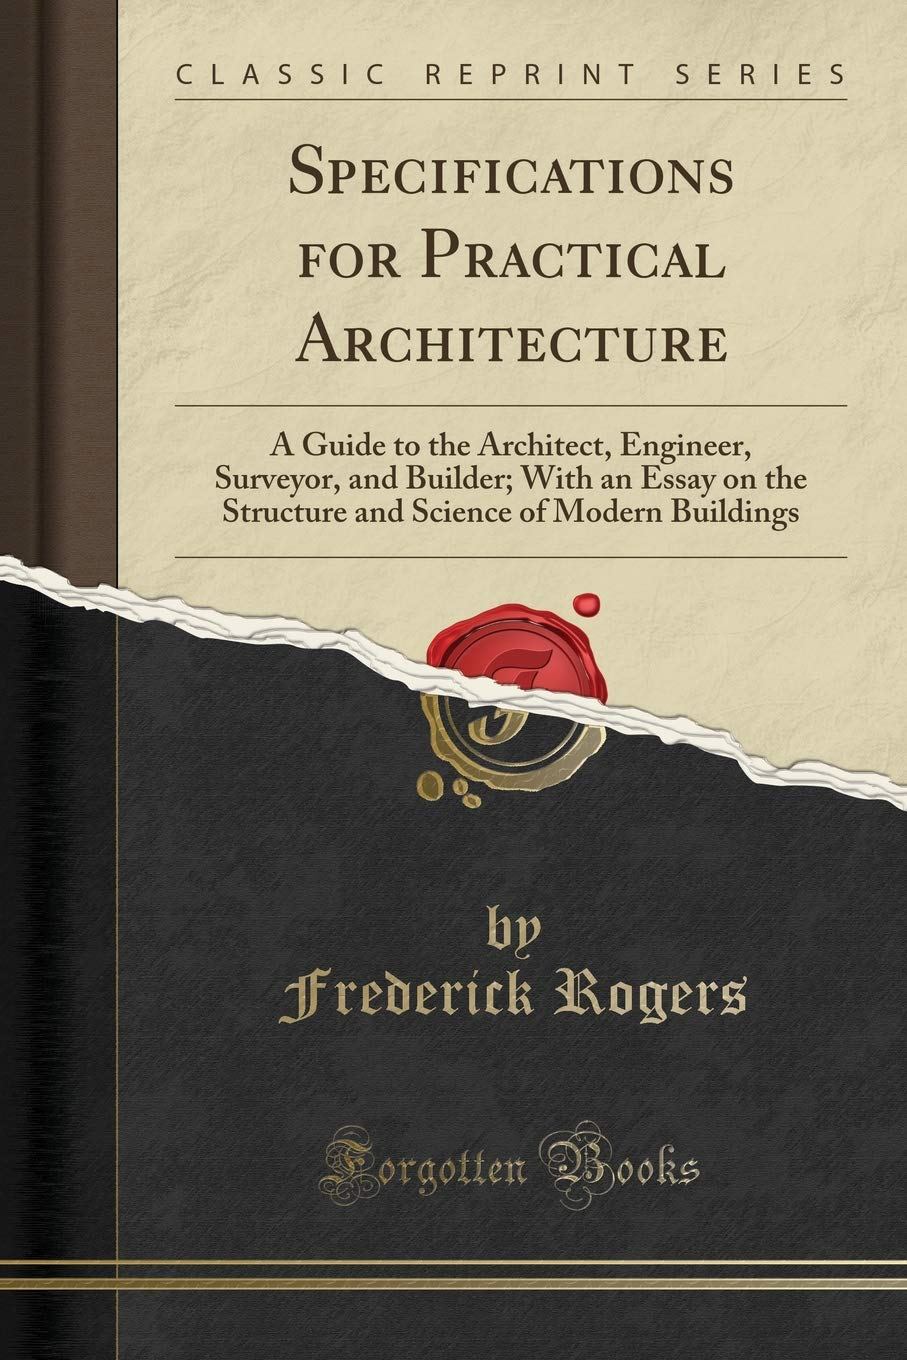 specifications for practical architecture a guide to the architect  specifications for practical architecture a guide to the architect  engineer surveyor and builder with an essay on the structure and science  of modern